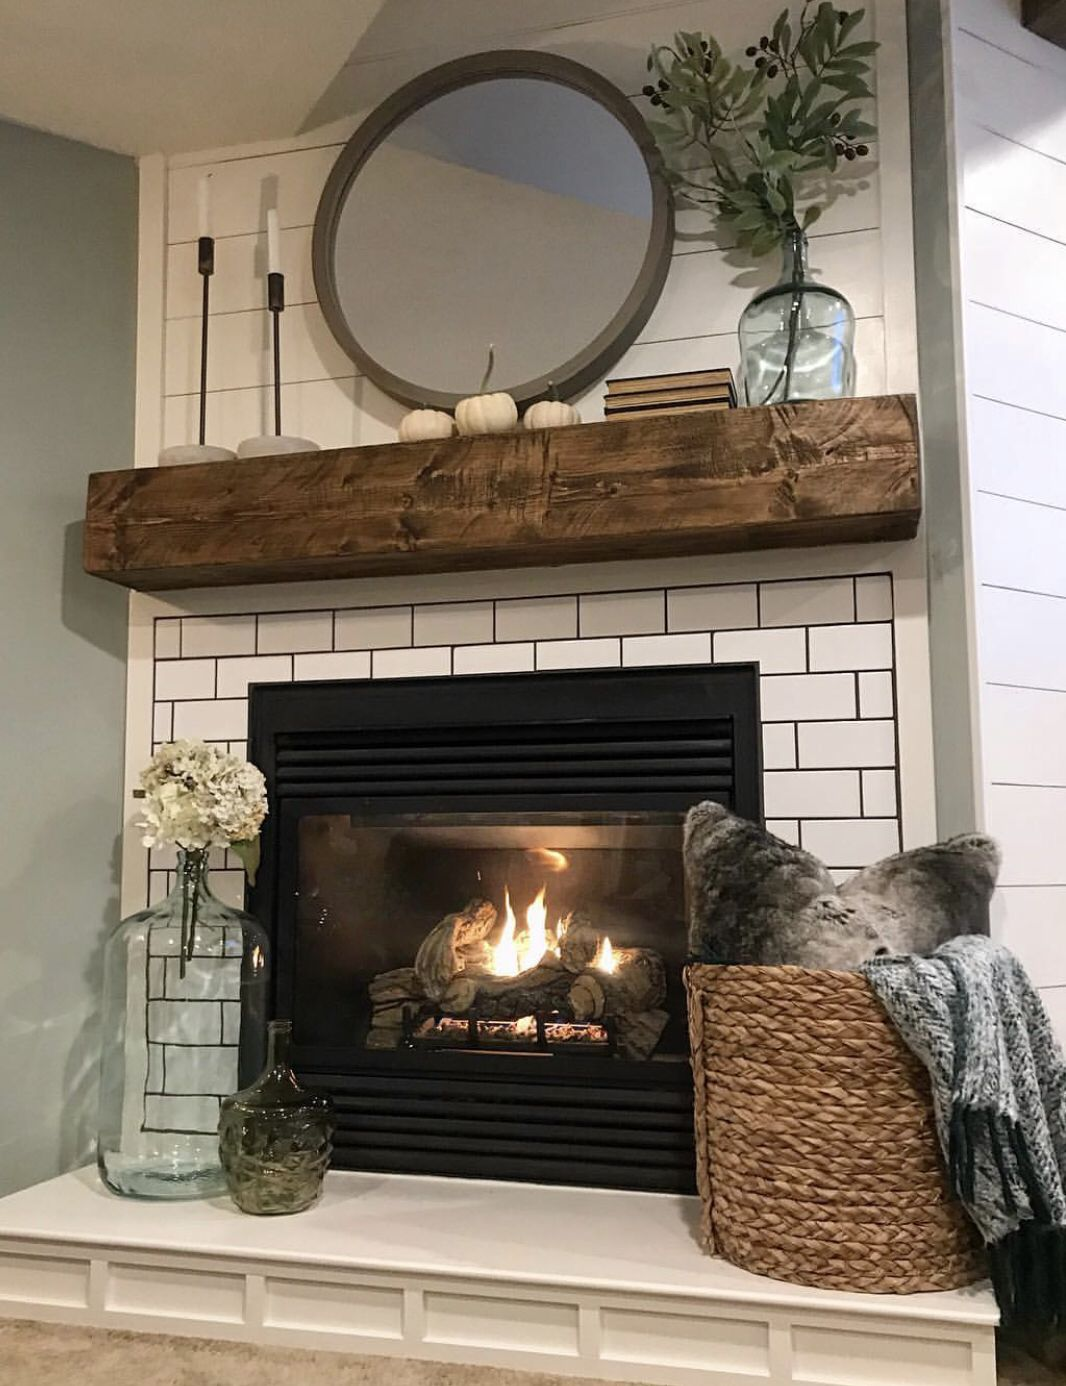 Mantle and Fireplace in 2020 | Home fireplace, Living room ...